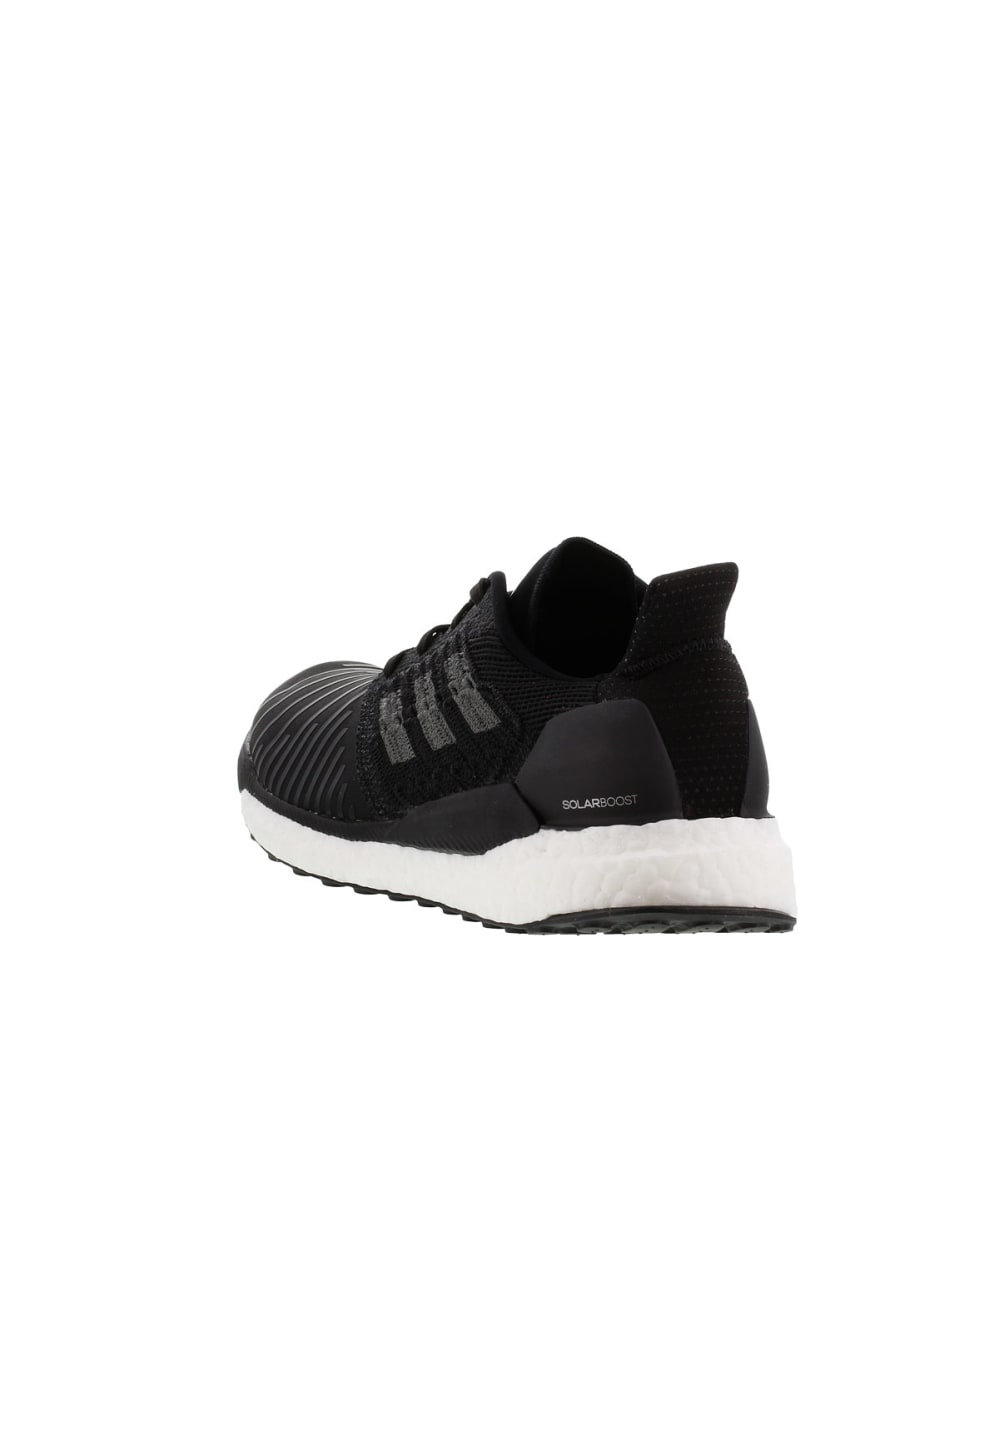 best service 8b701 cccb7 adidas Solar Boost - Running shoes for Women - Black